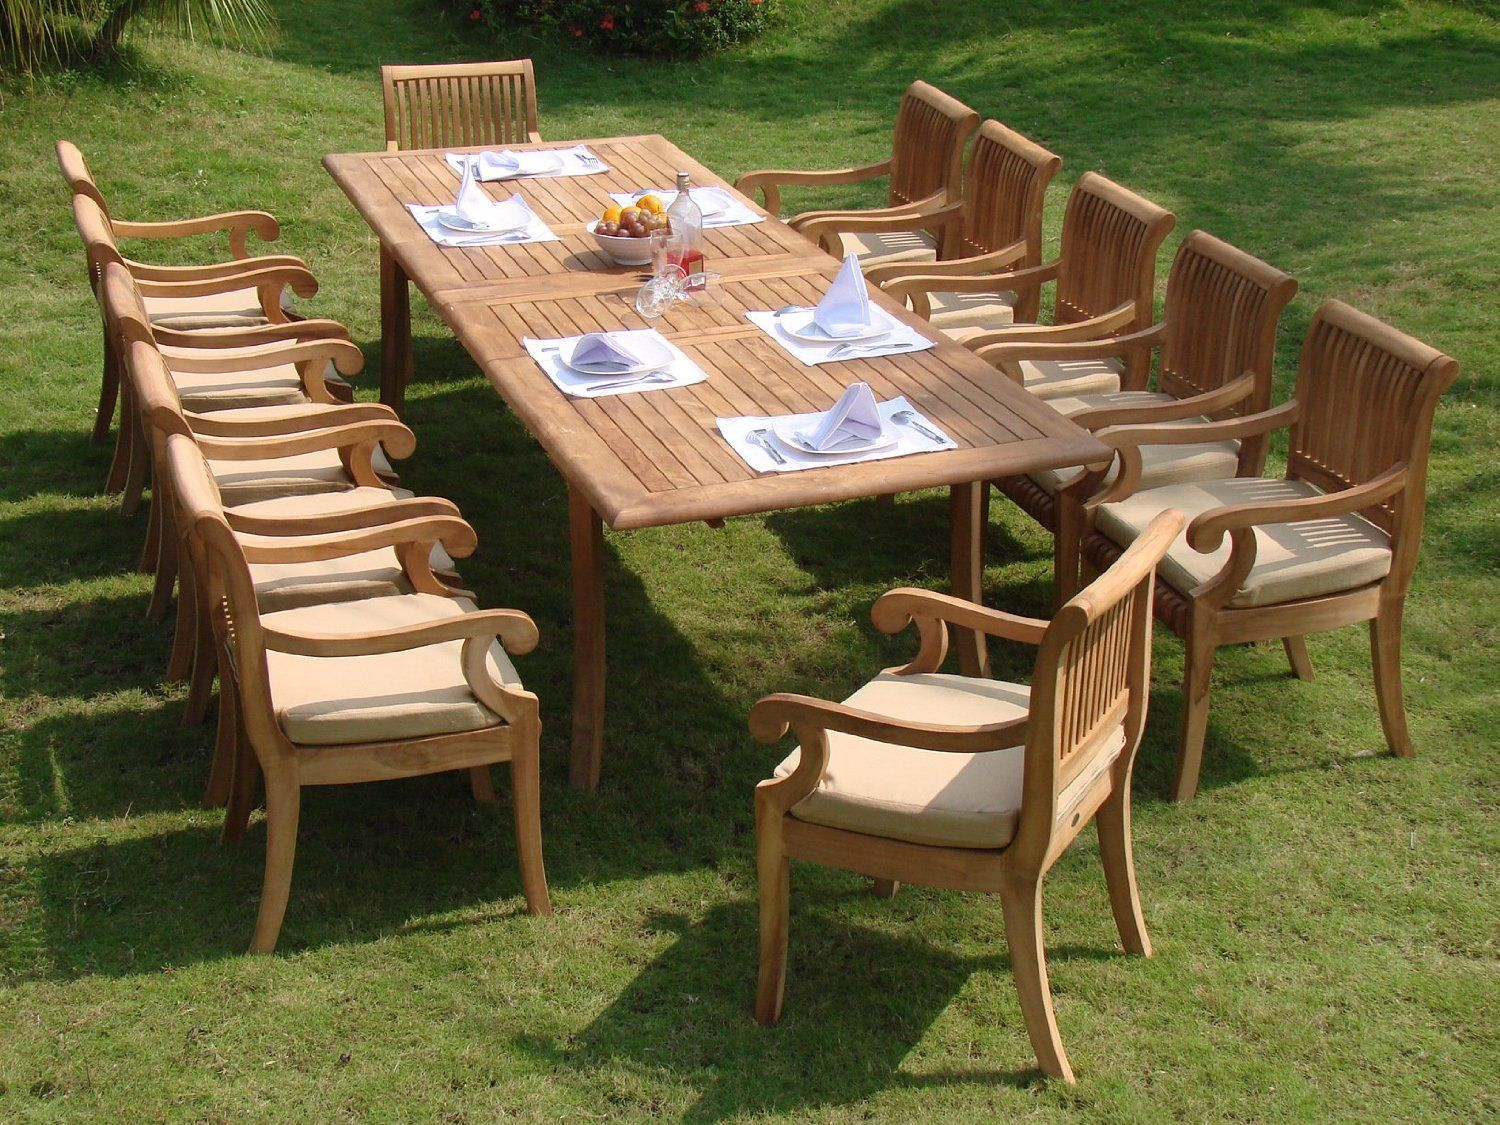 Teak Outdoor Patio Furniture Cool Rustic Furniture Check More At Http Cacophonous Teak Outdoor Furniture Patio Teak Garden Furniture Teak Outdoor Furniture